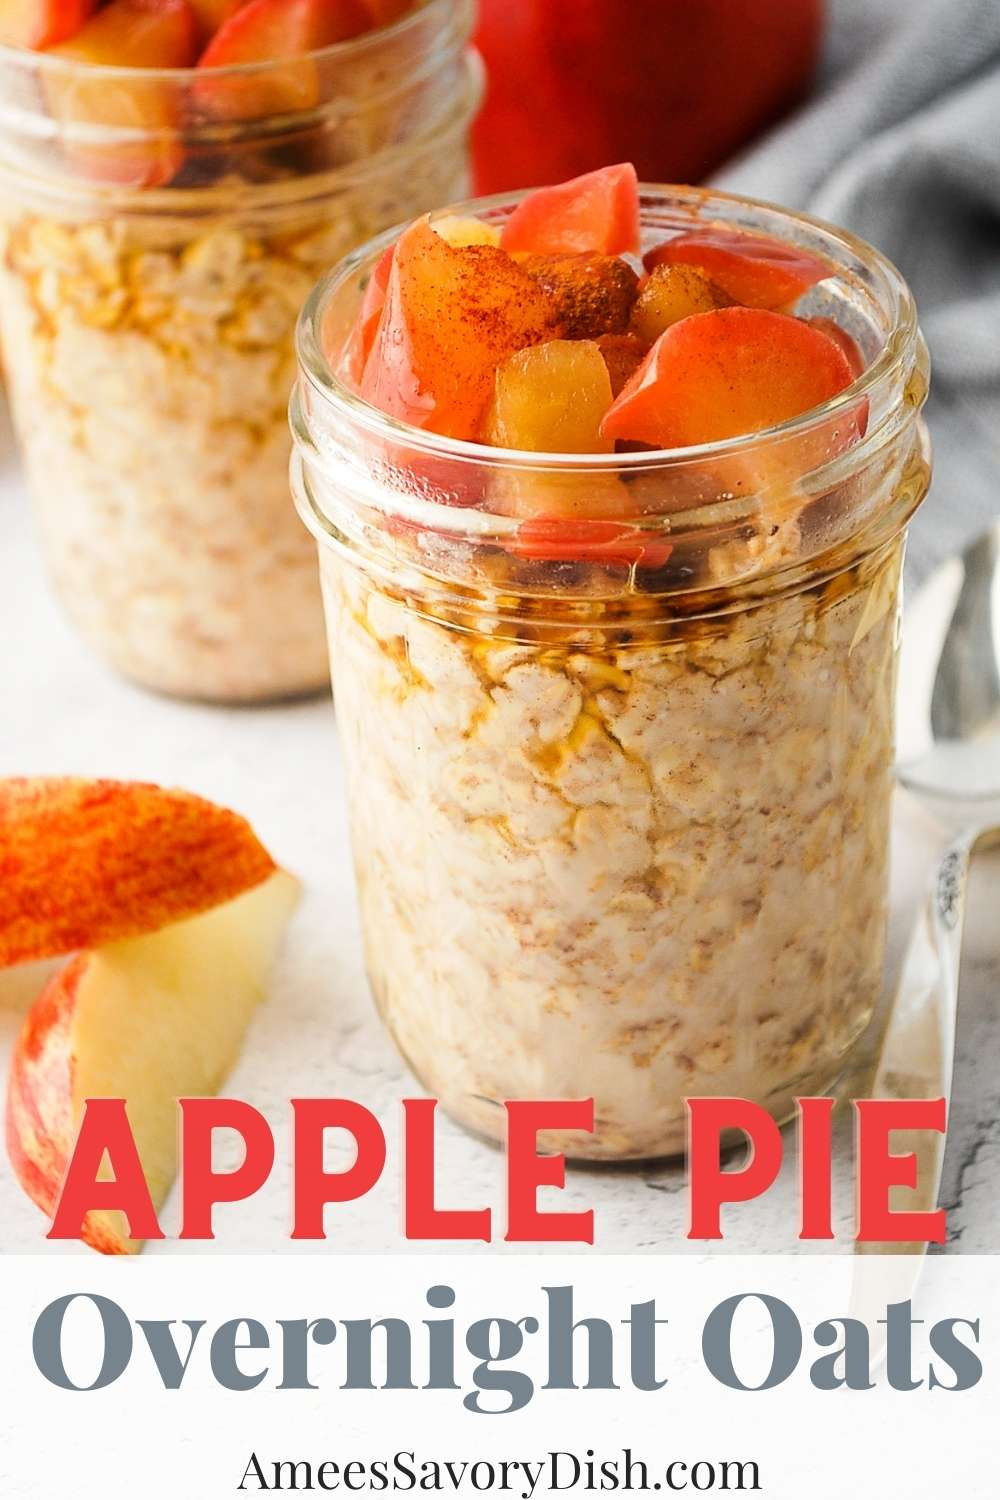 These tasty Apple Pie Overnight Oats are made with perfectly cooked apples, cinnamon, oats, and natural sweetener -a simple, nutritious, and delicious way to start the day! via @Ameessavorydish